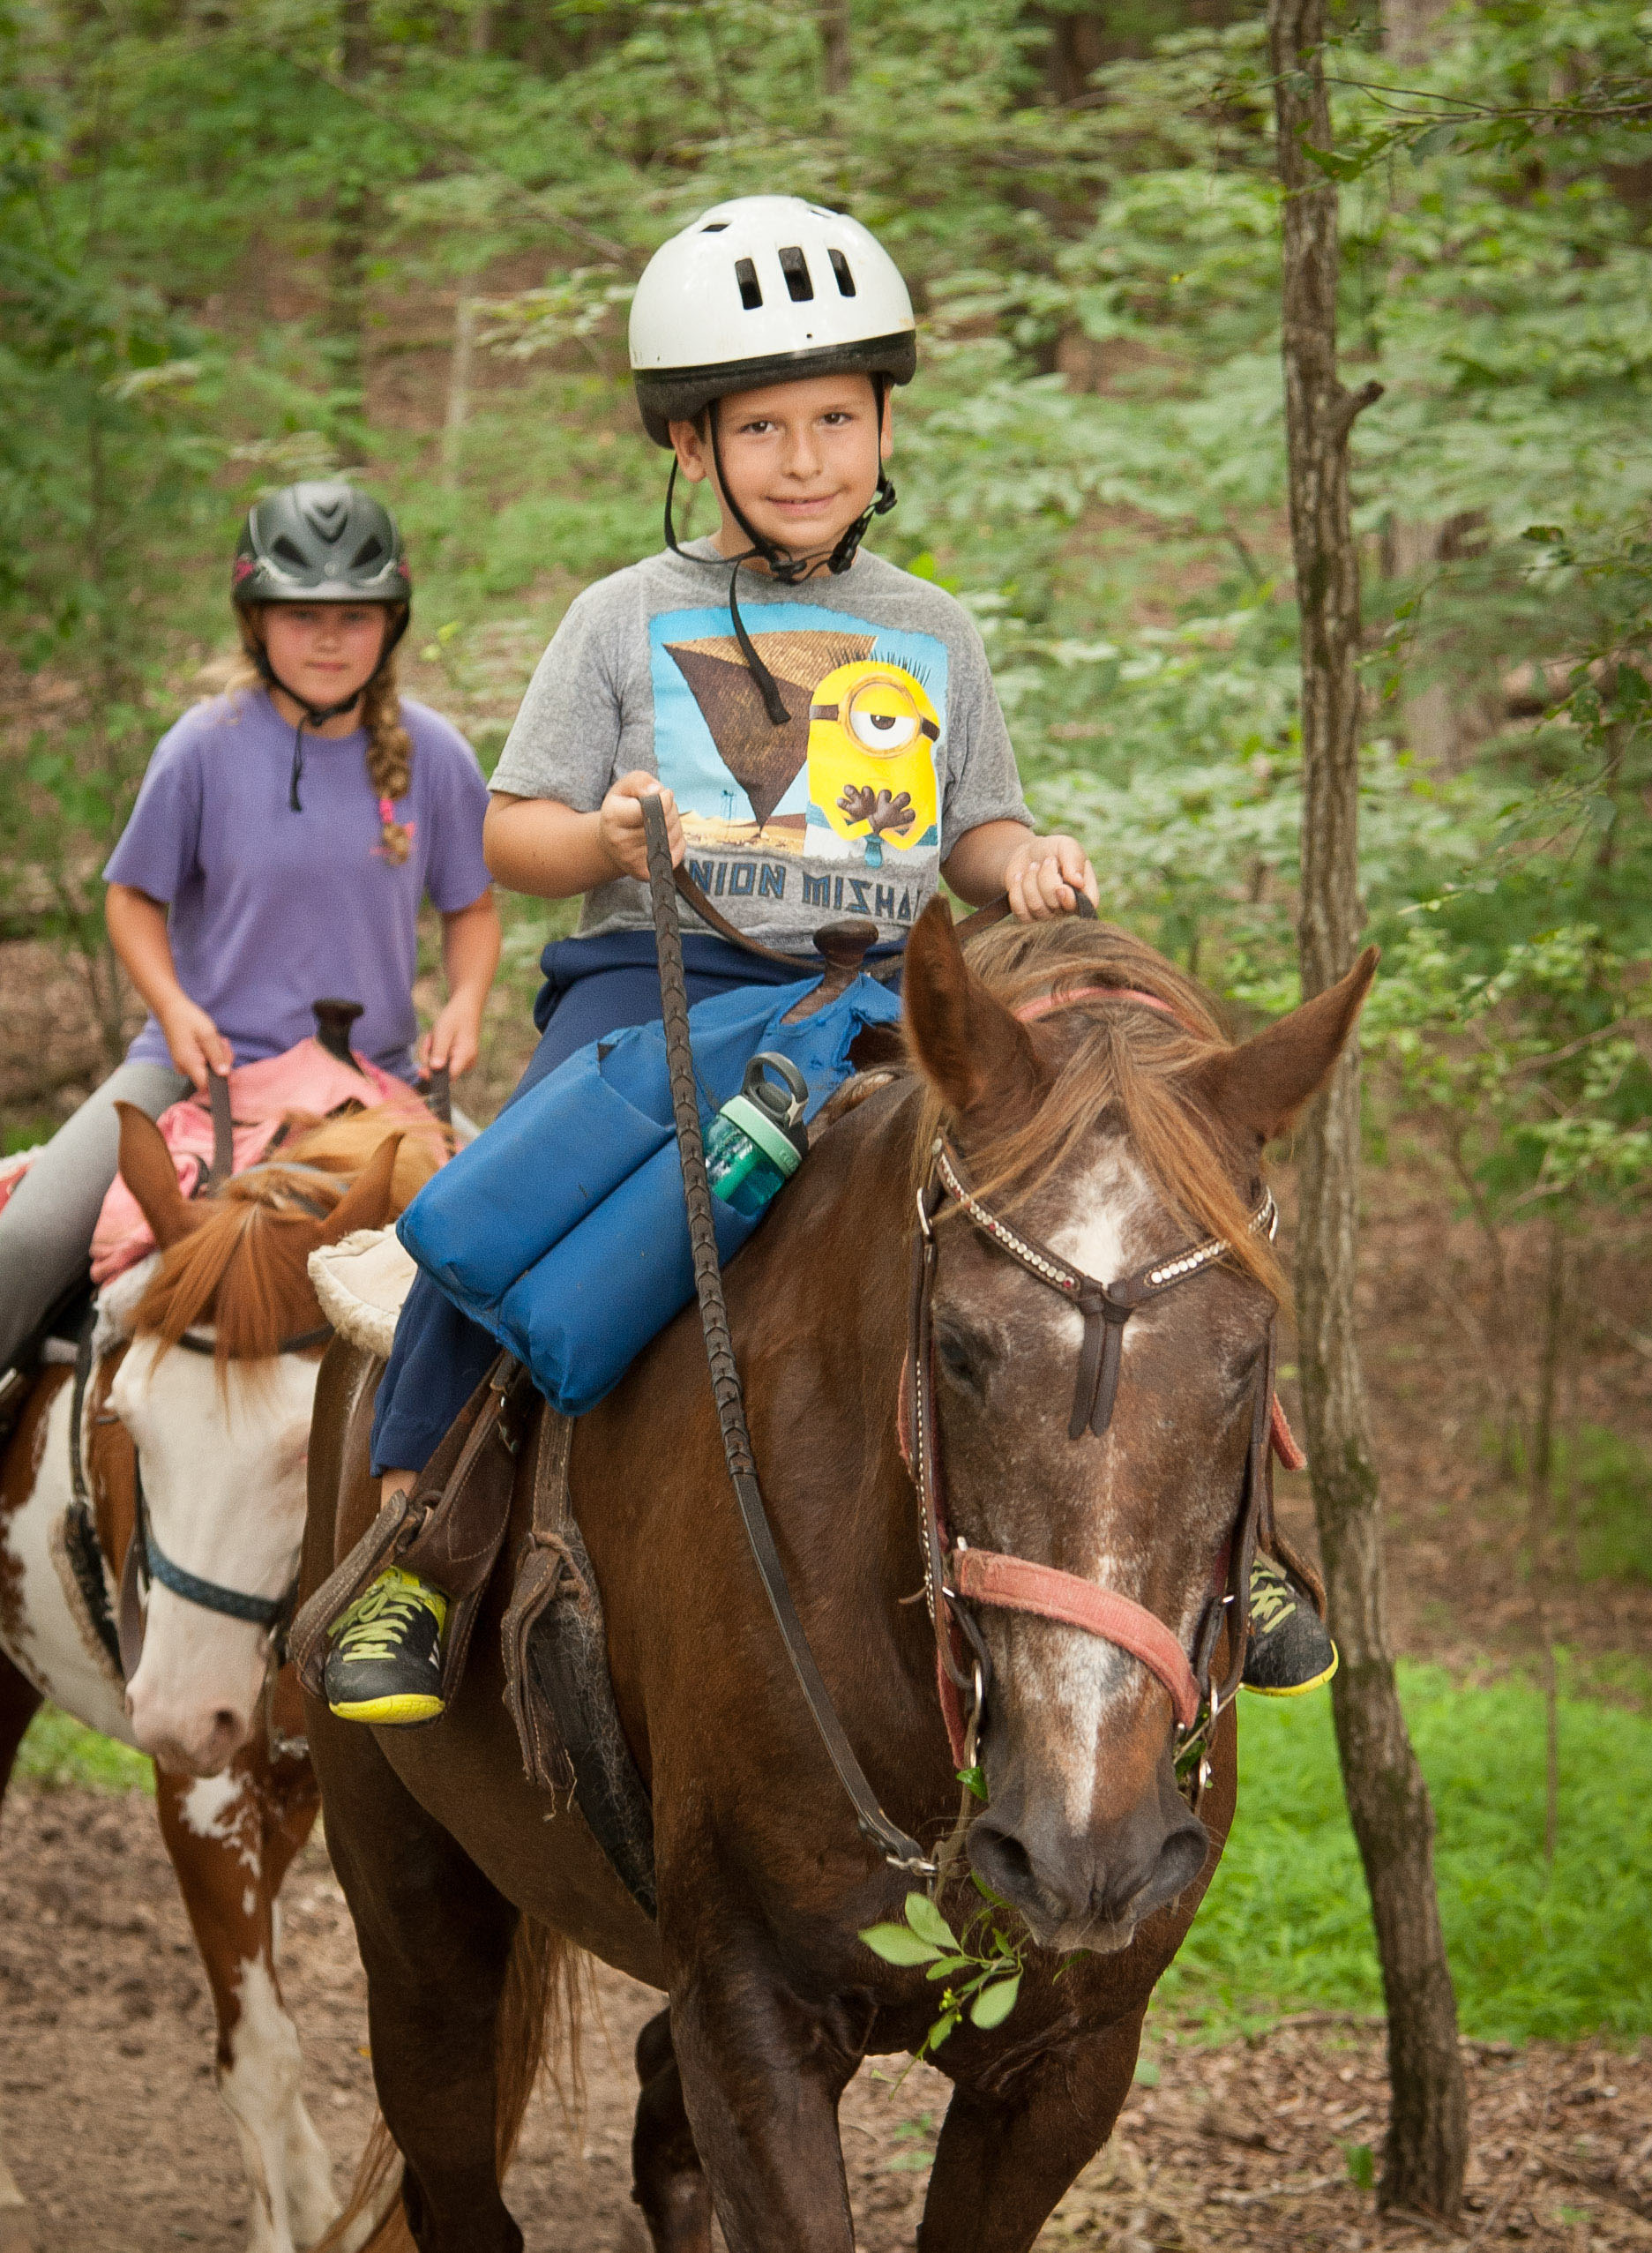 Young Boy Horseback Riding on His Birthday